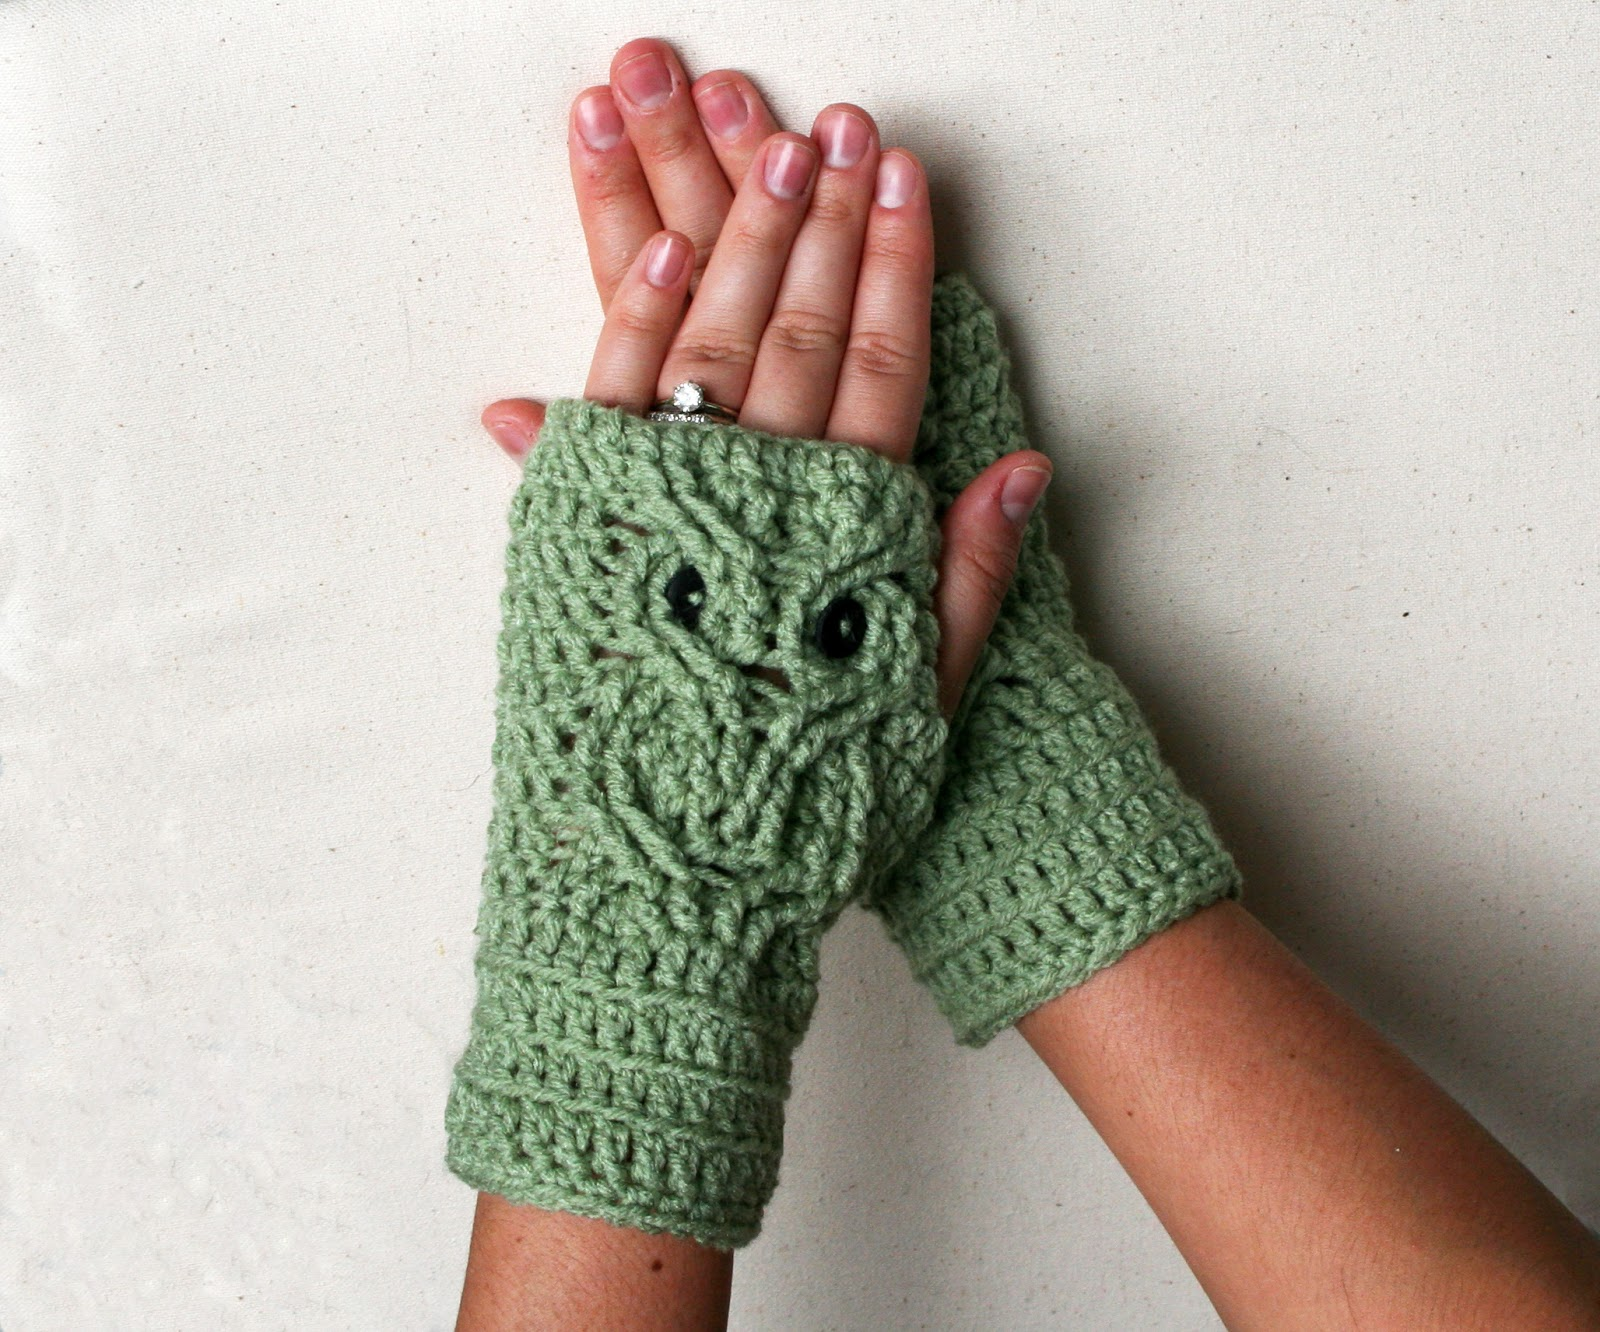 Crochet Fingerless Gloves Tutorials : Tampa Bay Crochet: Free Crochet Pattern: Owl Fingerless Gloves